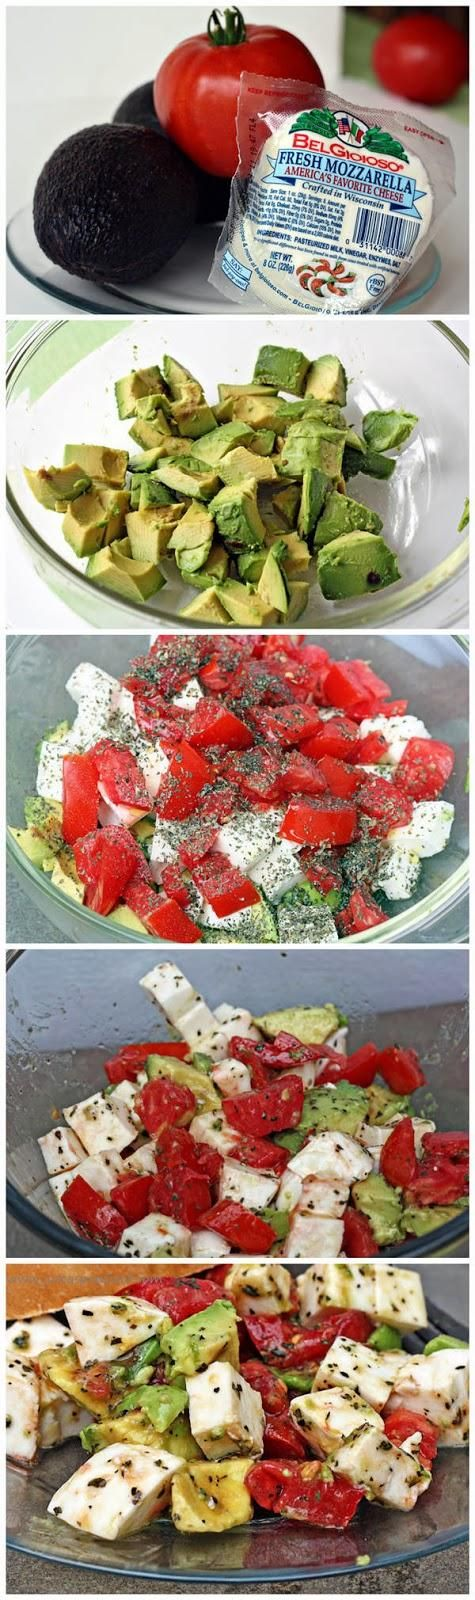 Avocado / Tomato/ Mozzarella Salad